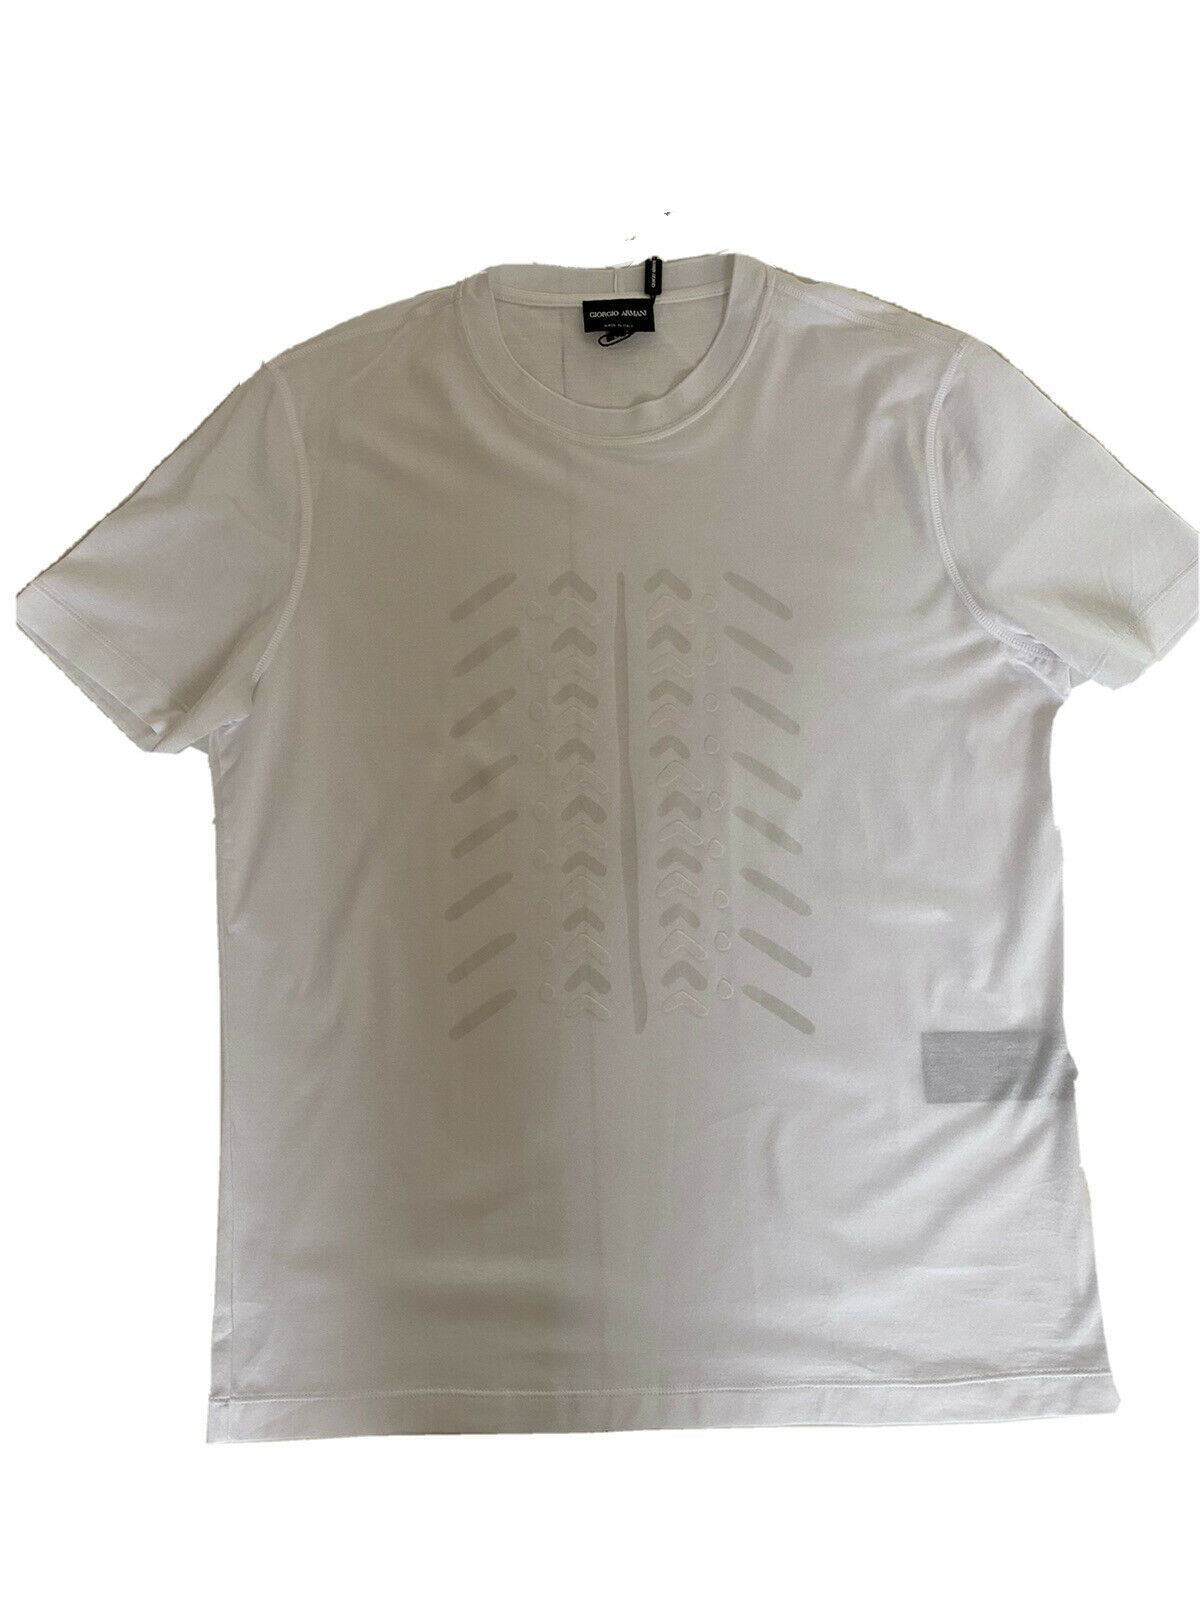 NWT $375 Giorgio Armani White Short Sleeve T-Shirt 52 Euro 3ZST55 Made in Italy